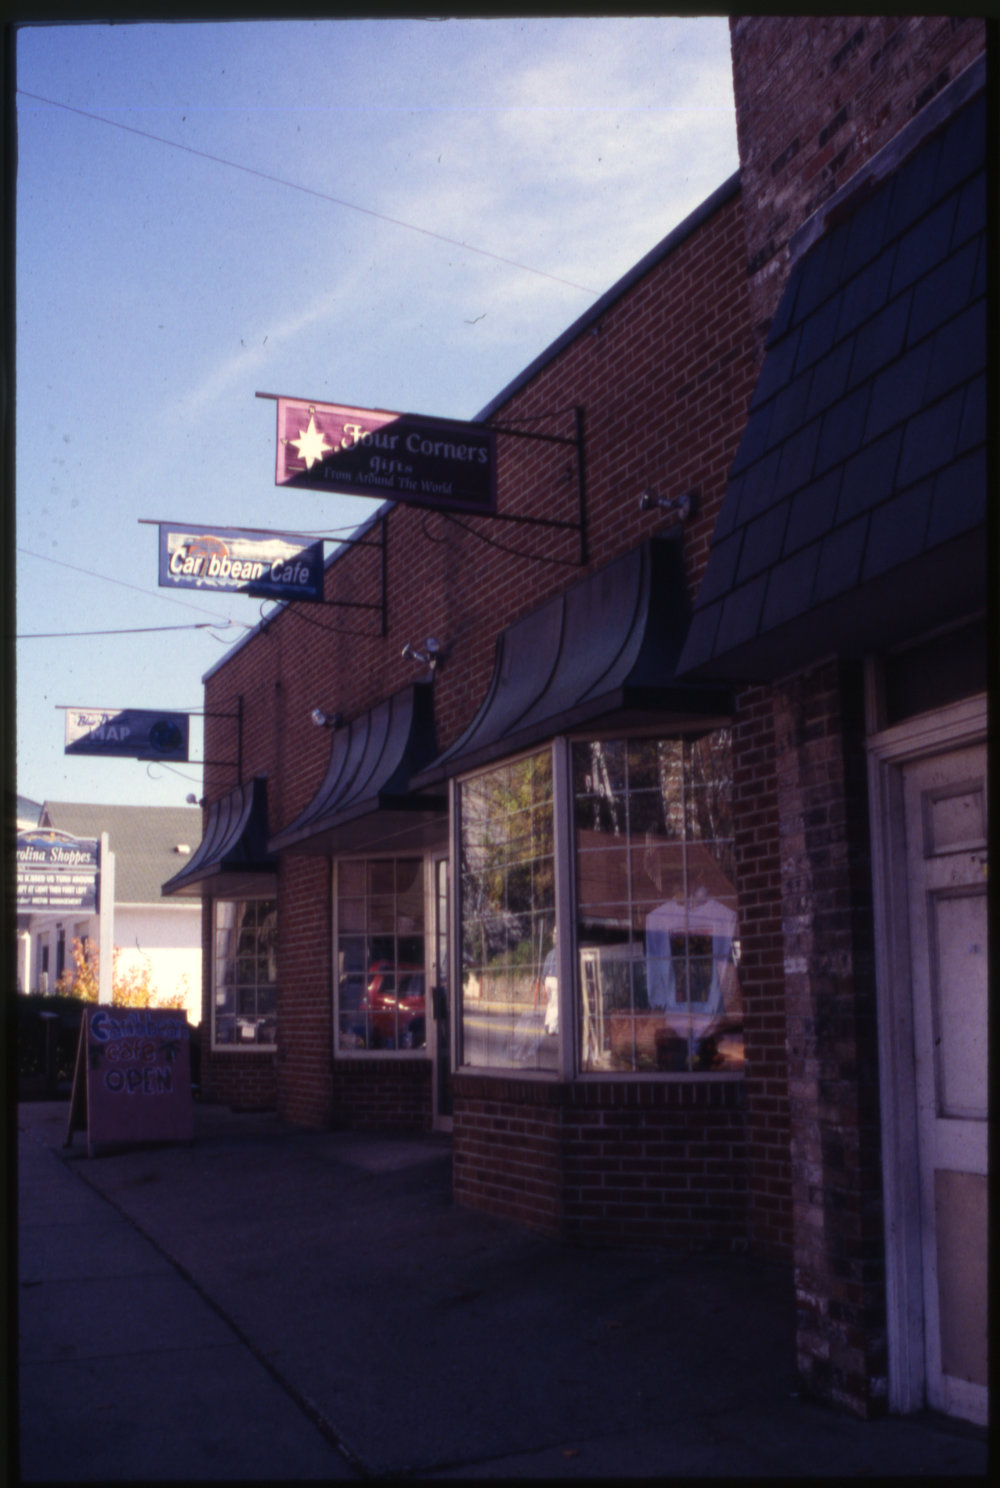 Seen here in the 1990s is the present-day Boone Saloon Building, originally known as the Carolina Pharmacy #2 Building. Image courtesy of the Downtown Boone Development Association Collection (Dow-Boo-1-001), Digital Watauga Project.